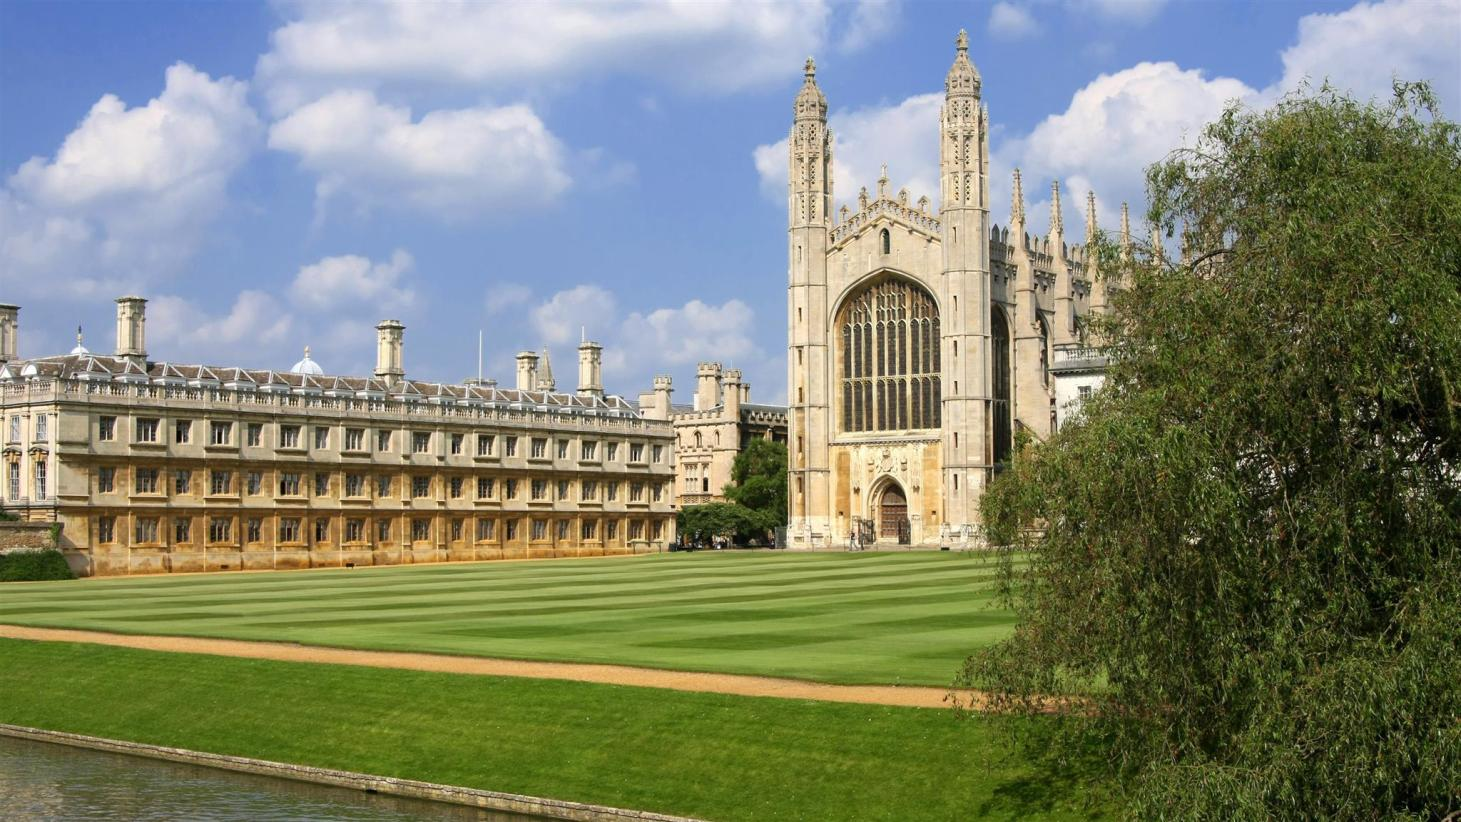 10 Best Cambridge Hotels: HD Photos + Reviews of Hotels in